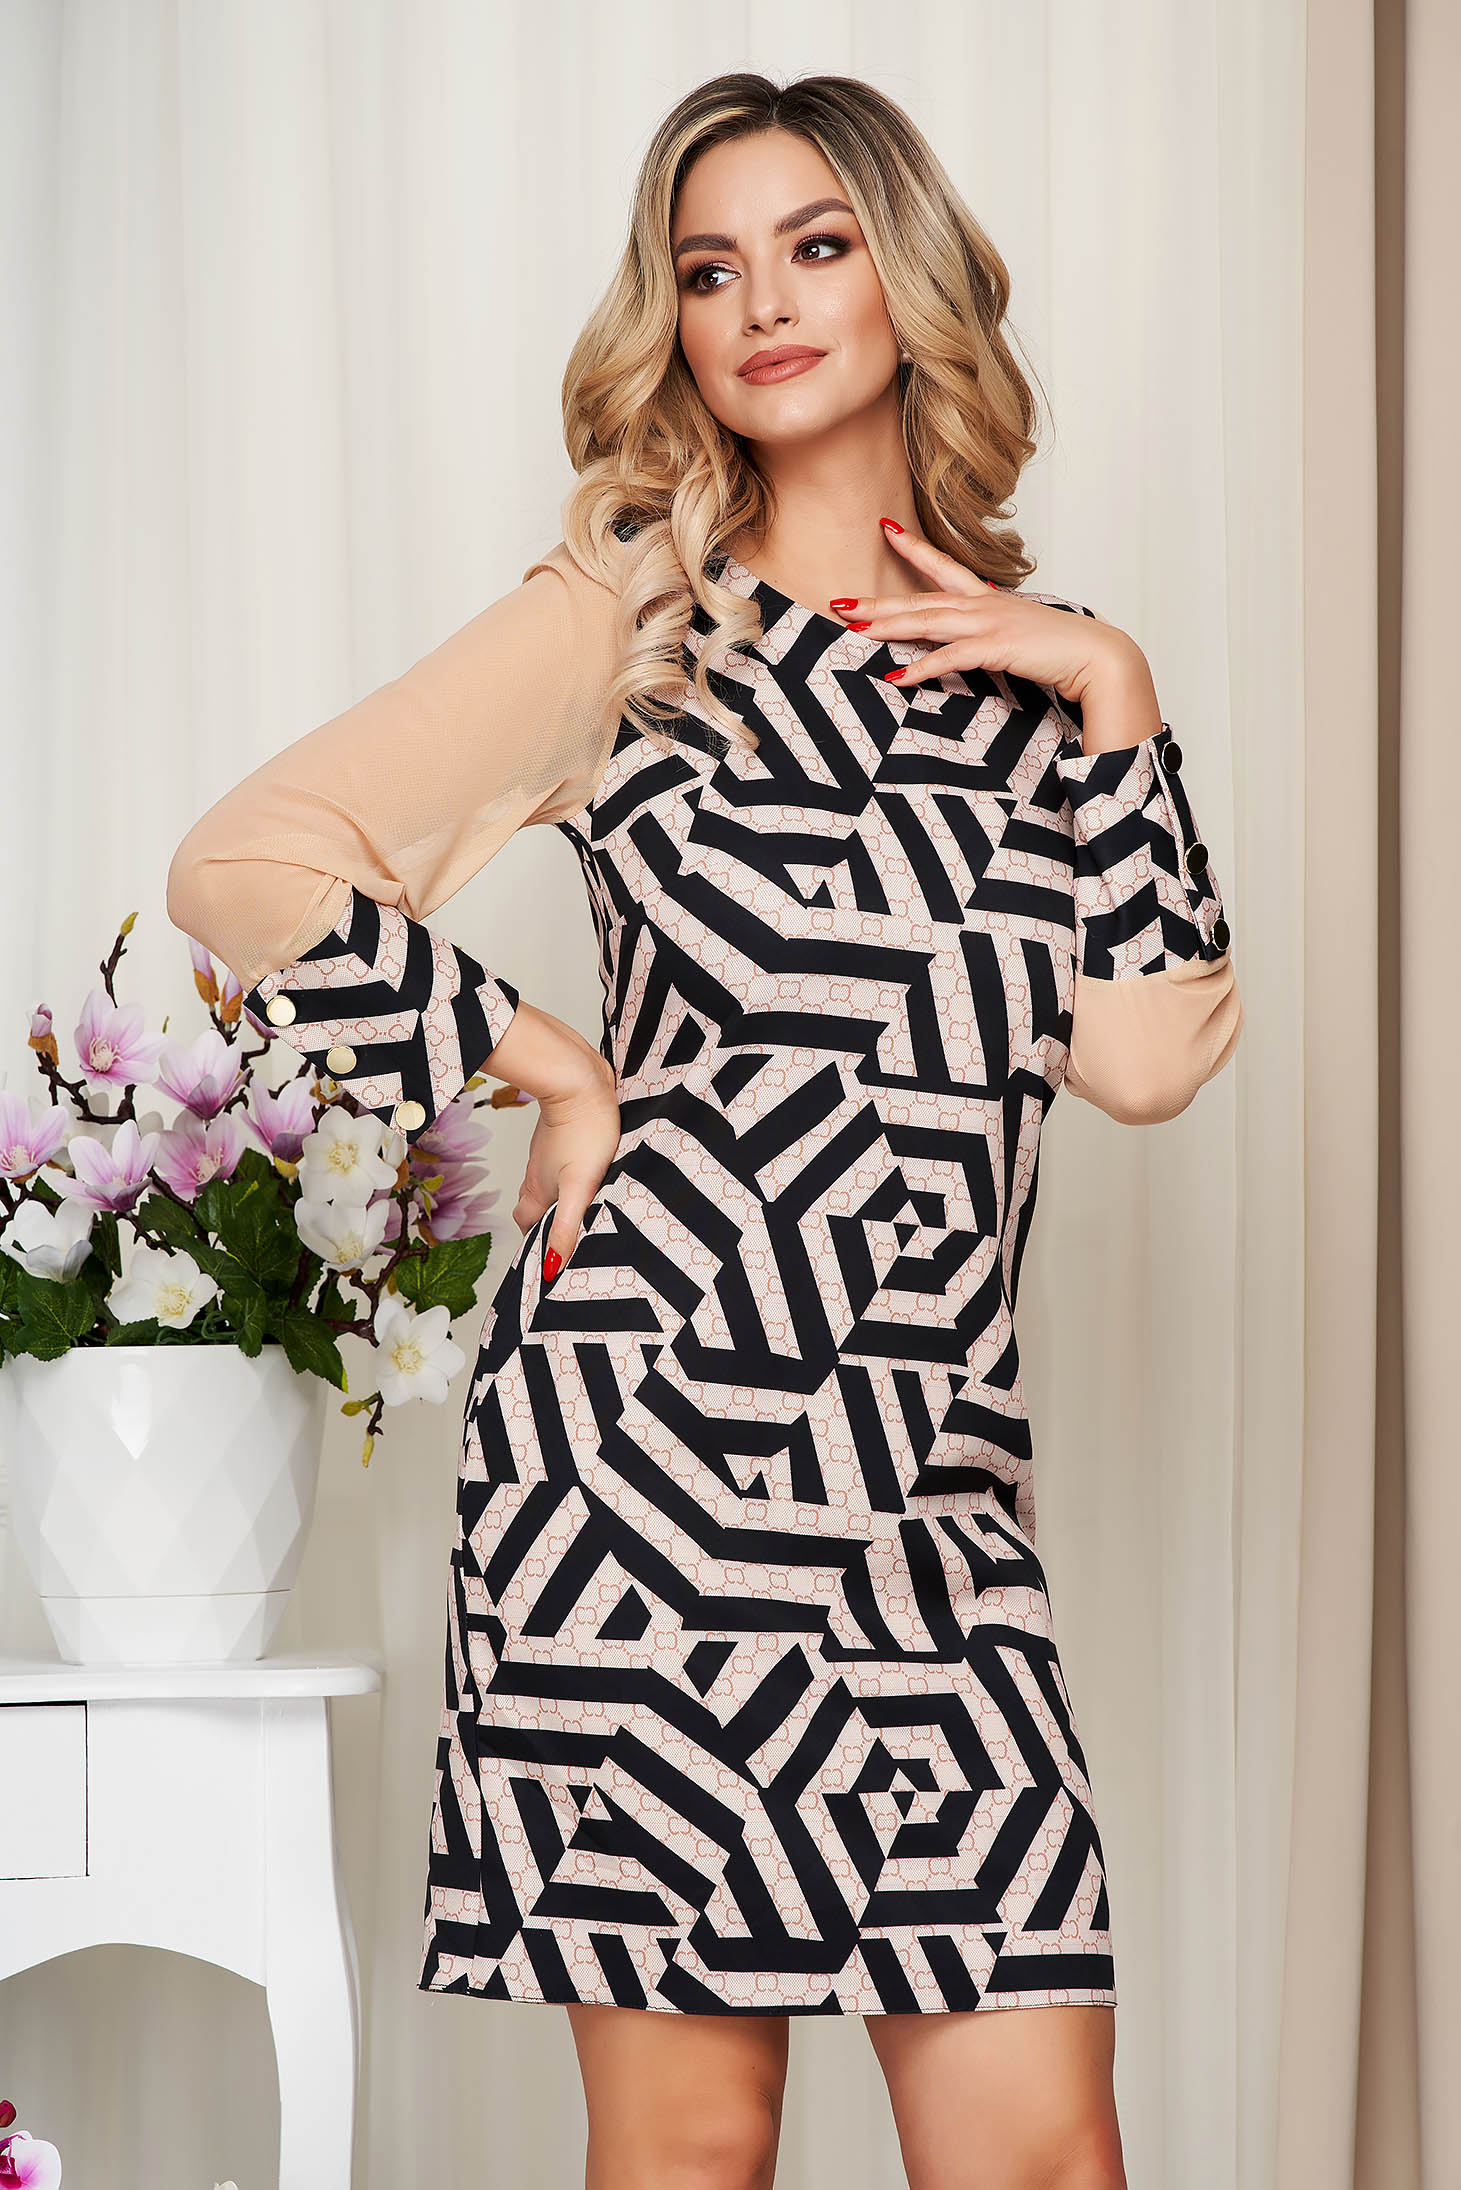 With graphic details office straight transparent sleeves cappuccino dress